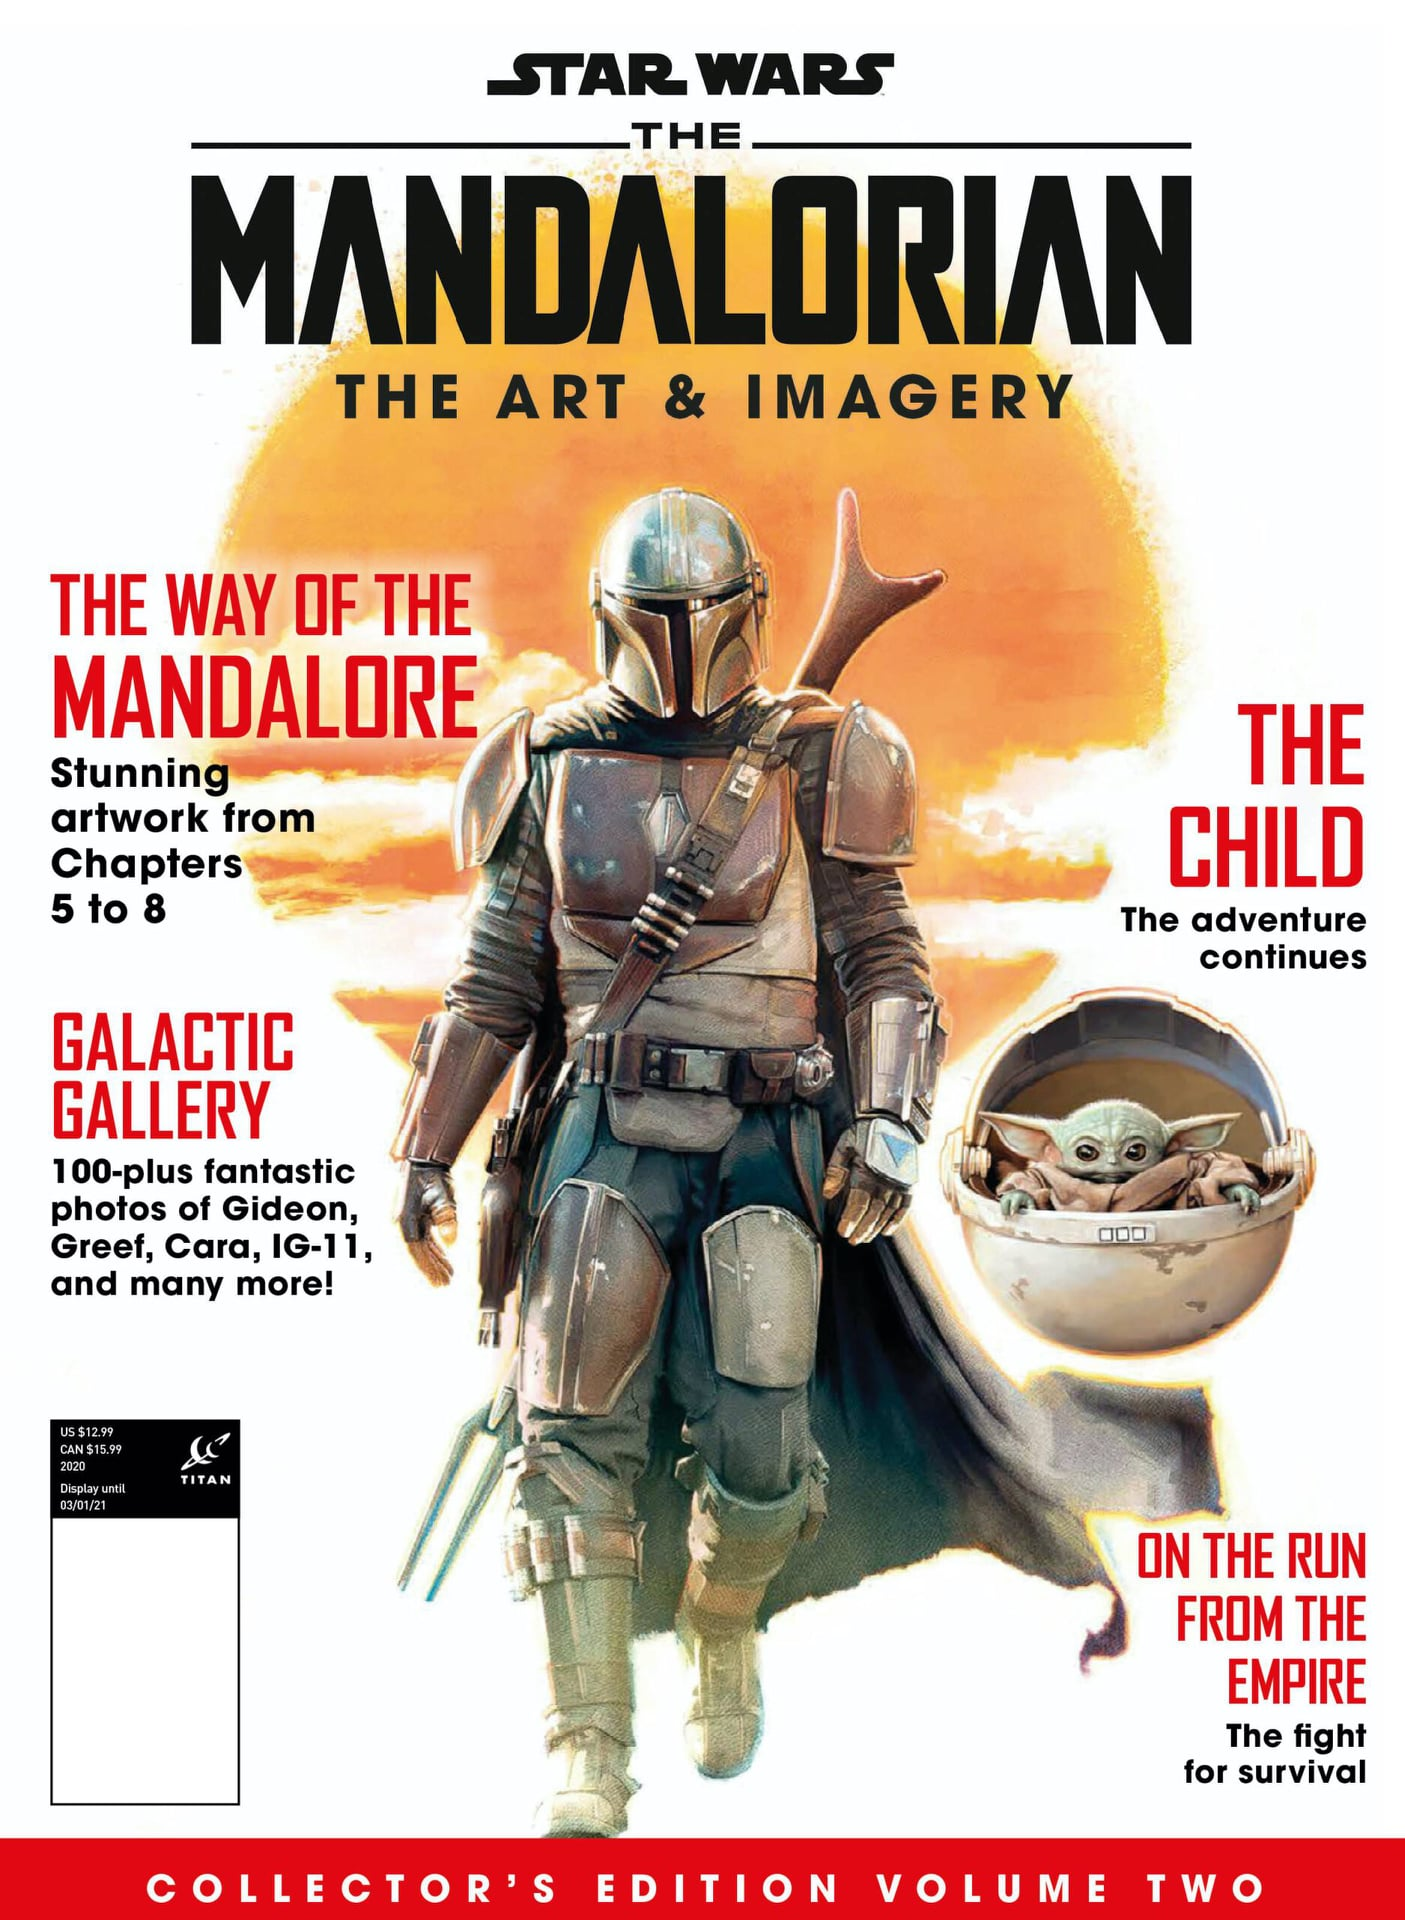 Star Wars The Mandalorian: The Official Collector's Edition Vol. 2